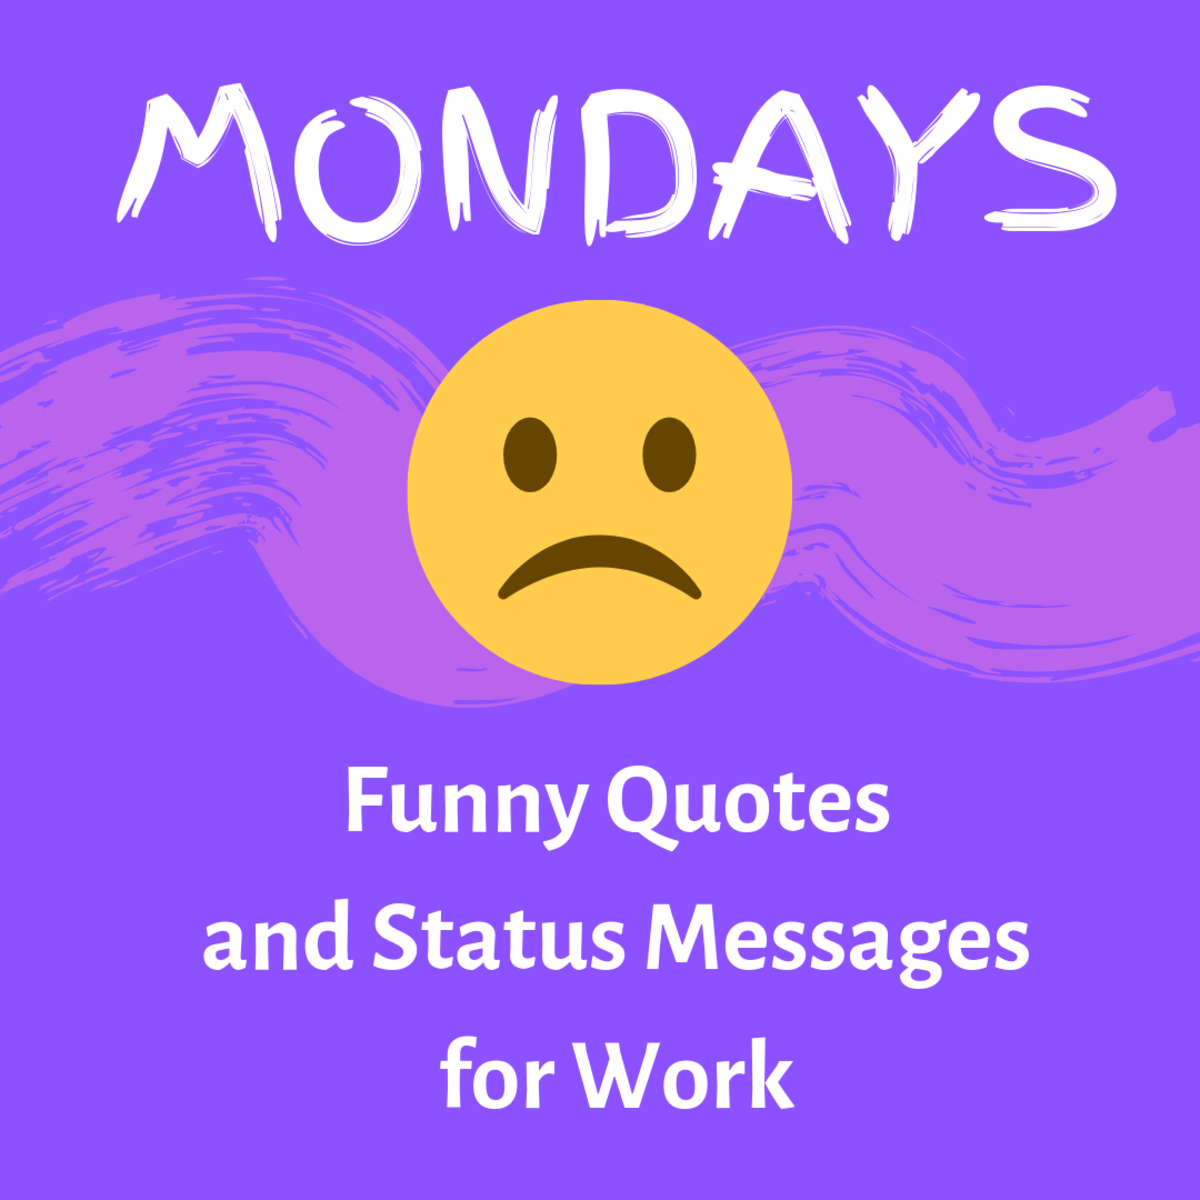 Read some funny quotes to help get your Monday at work off to a good start!